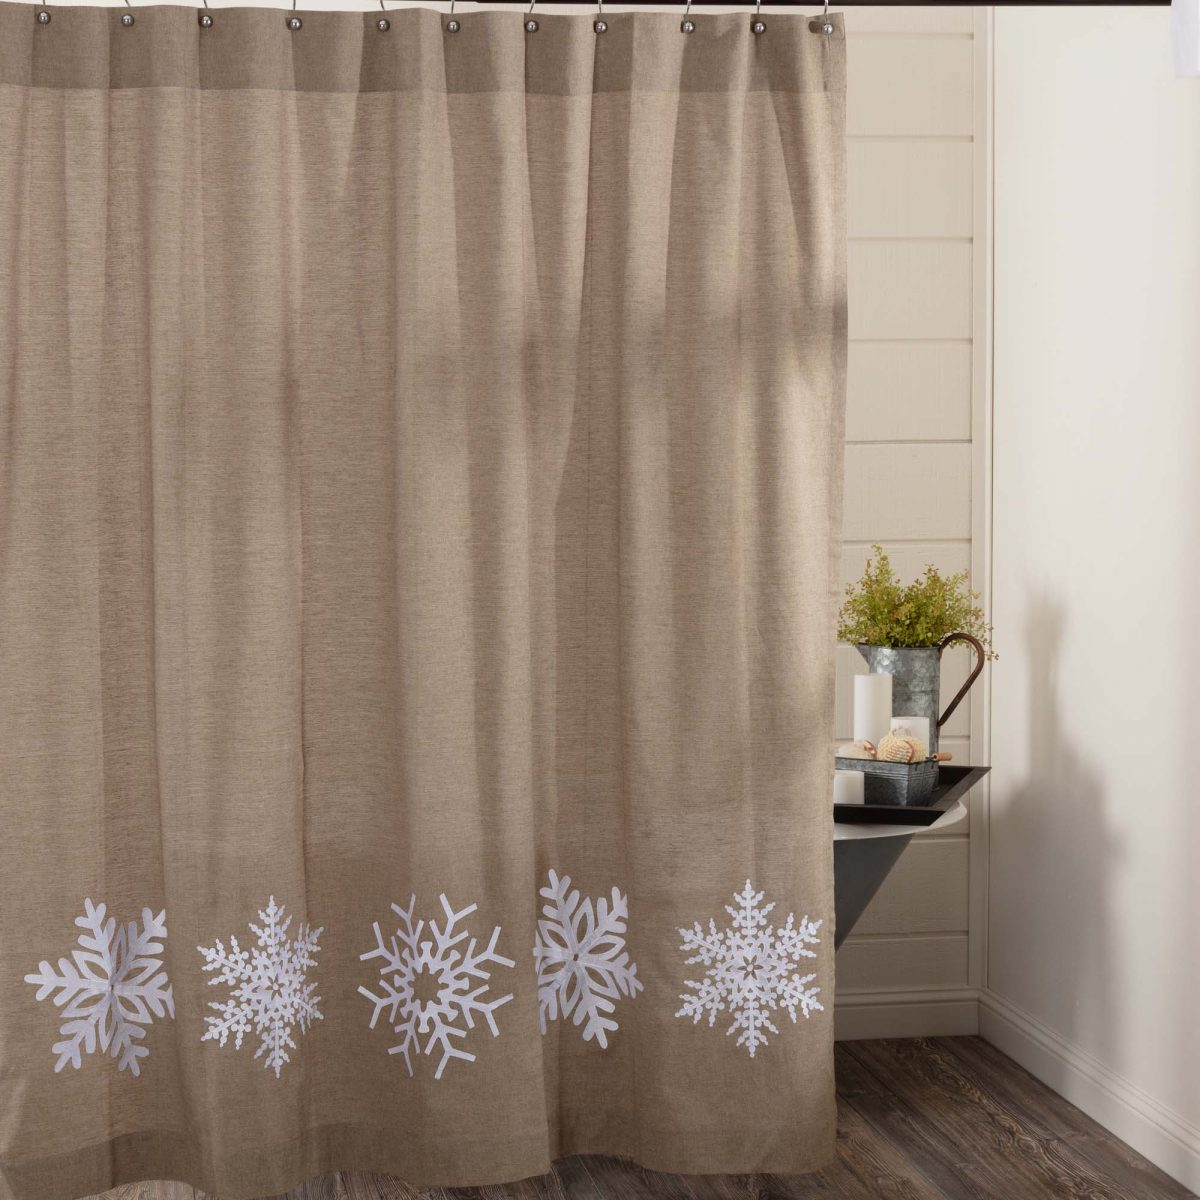 Snowflake Embroidered Shower Curtain